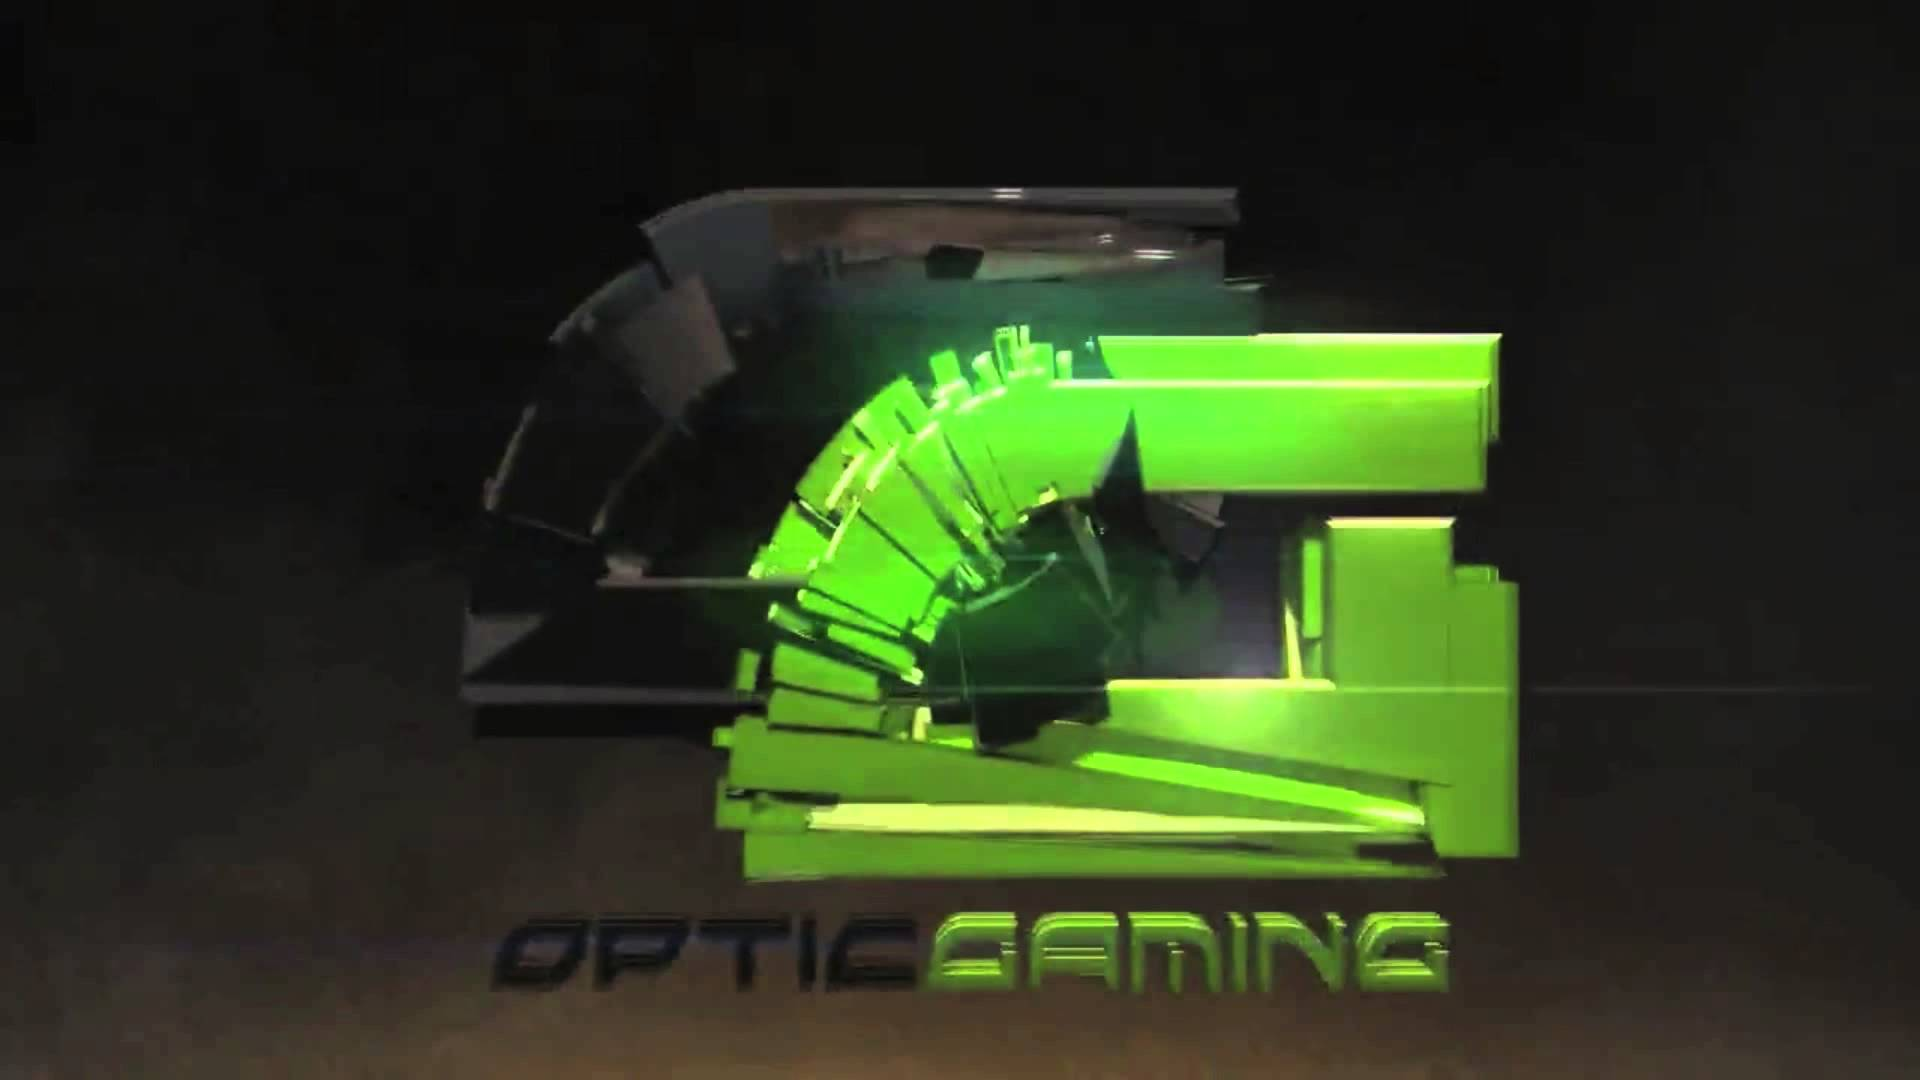 OpTic Gaming intros 1920x1080